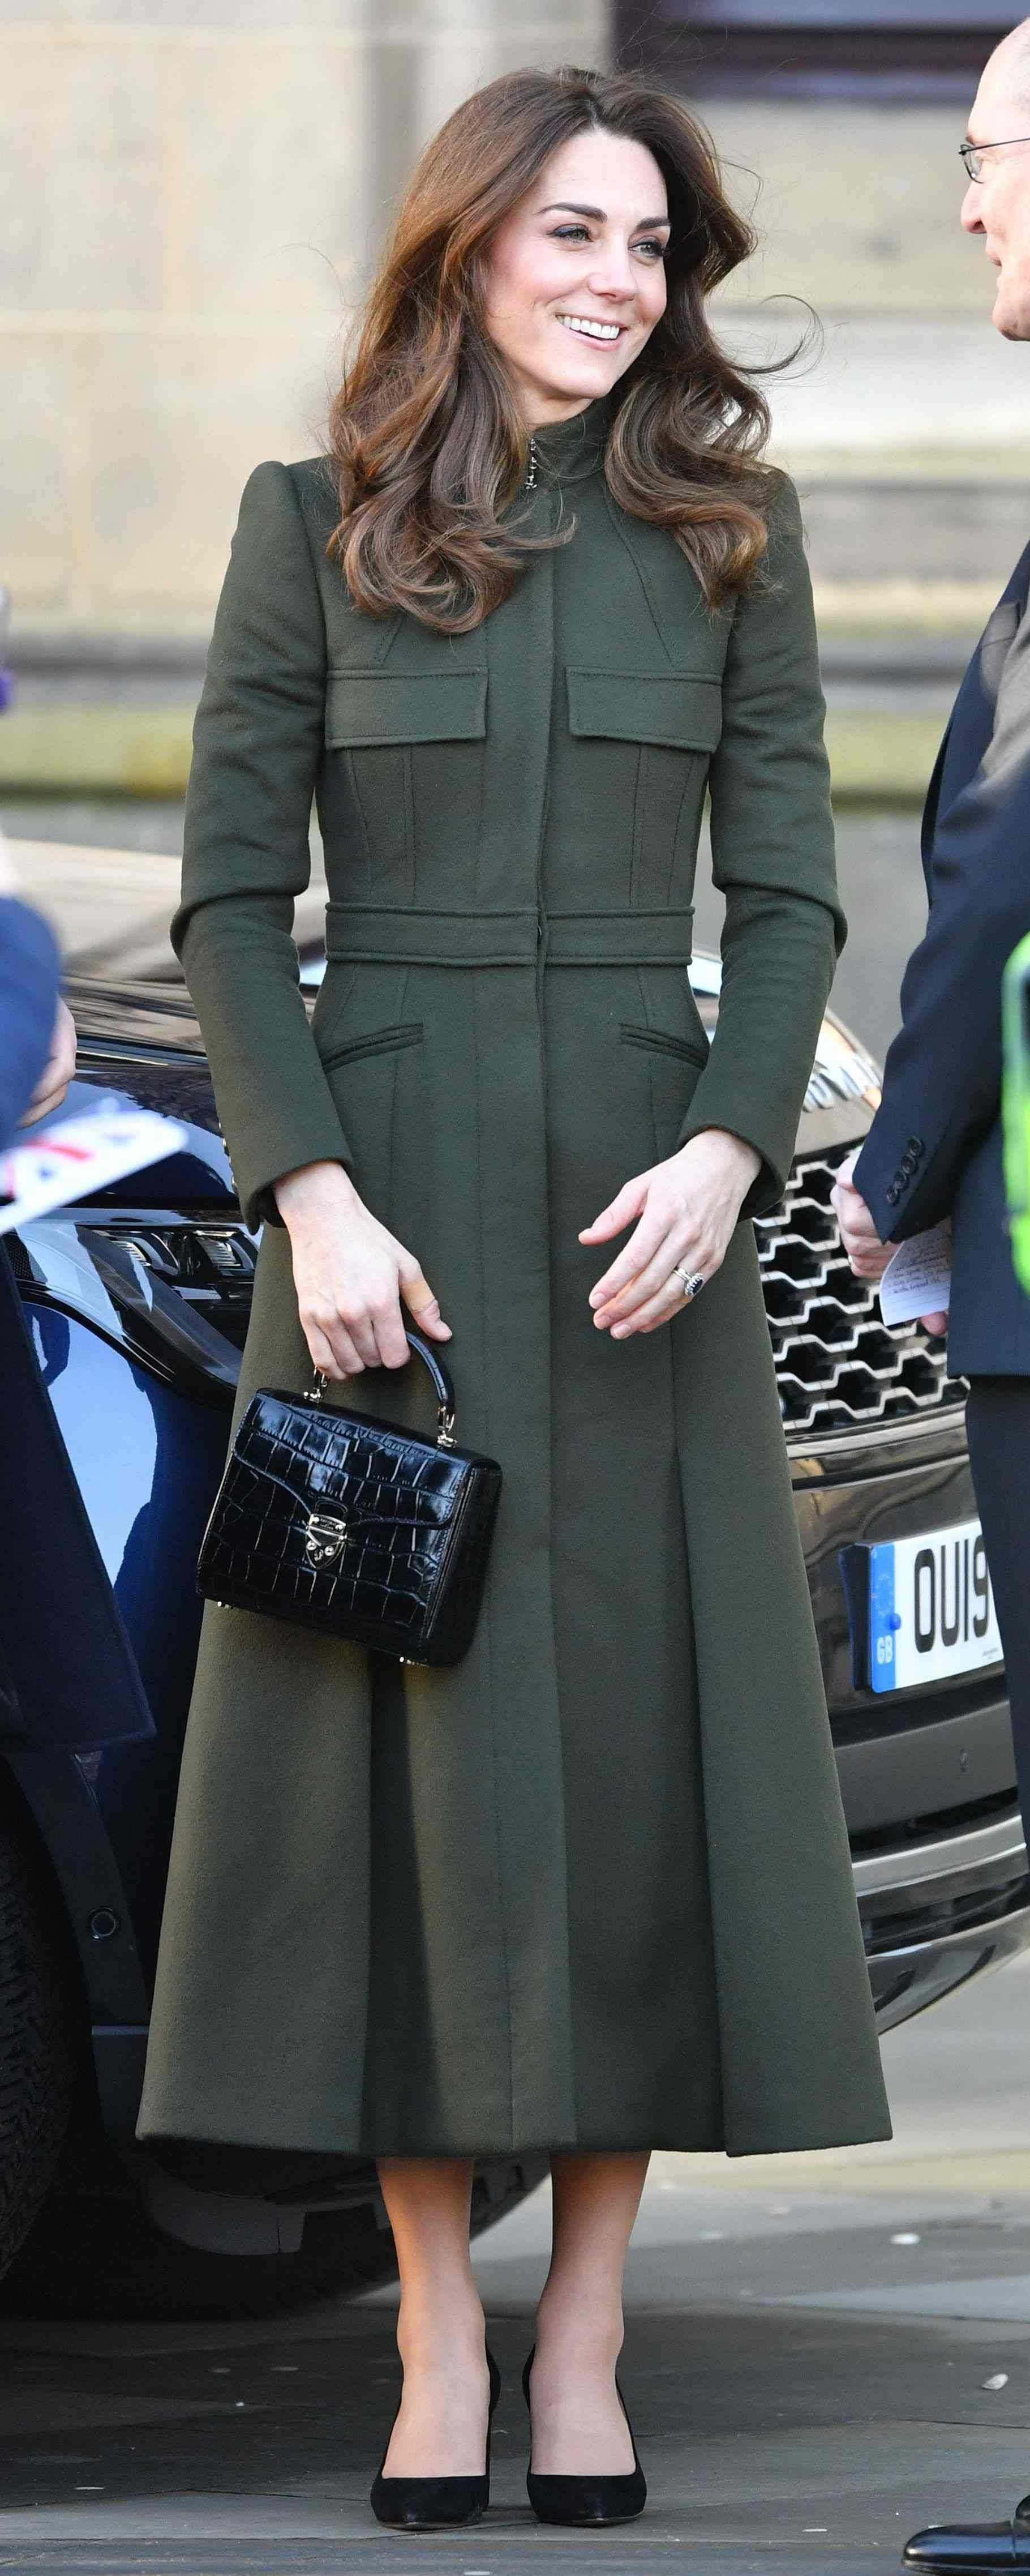 15 Jan 2020 Duchess Of Cambridge Visits Bradford In 2020 Kate Middleton Style Outfits Kate Middleton Outfits Kate Middleton Dress